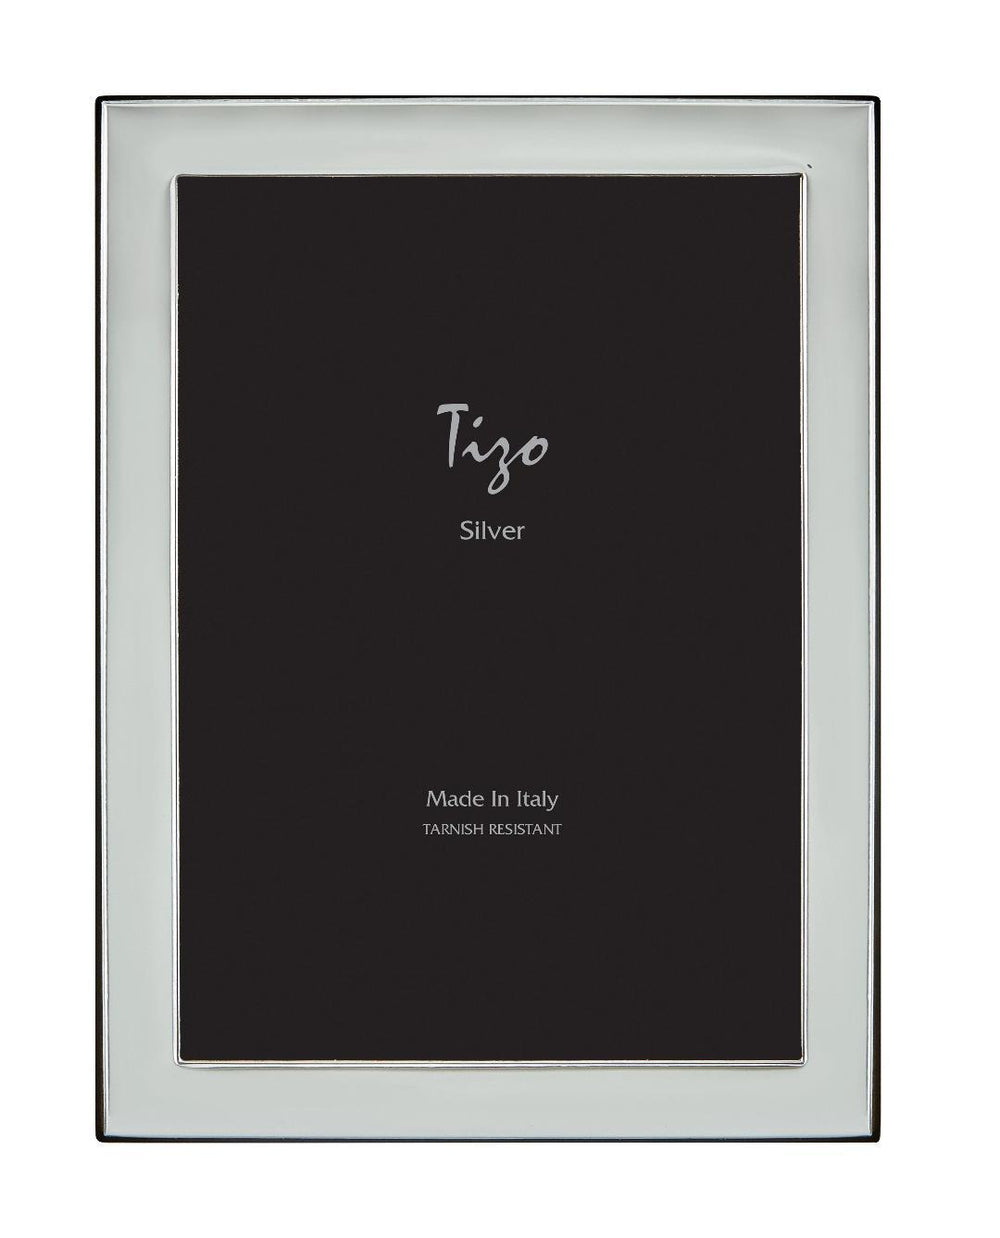 Tizo 5x7 Narrow Plain Silverplate Frame